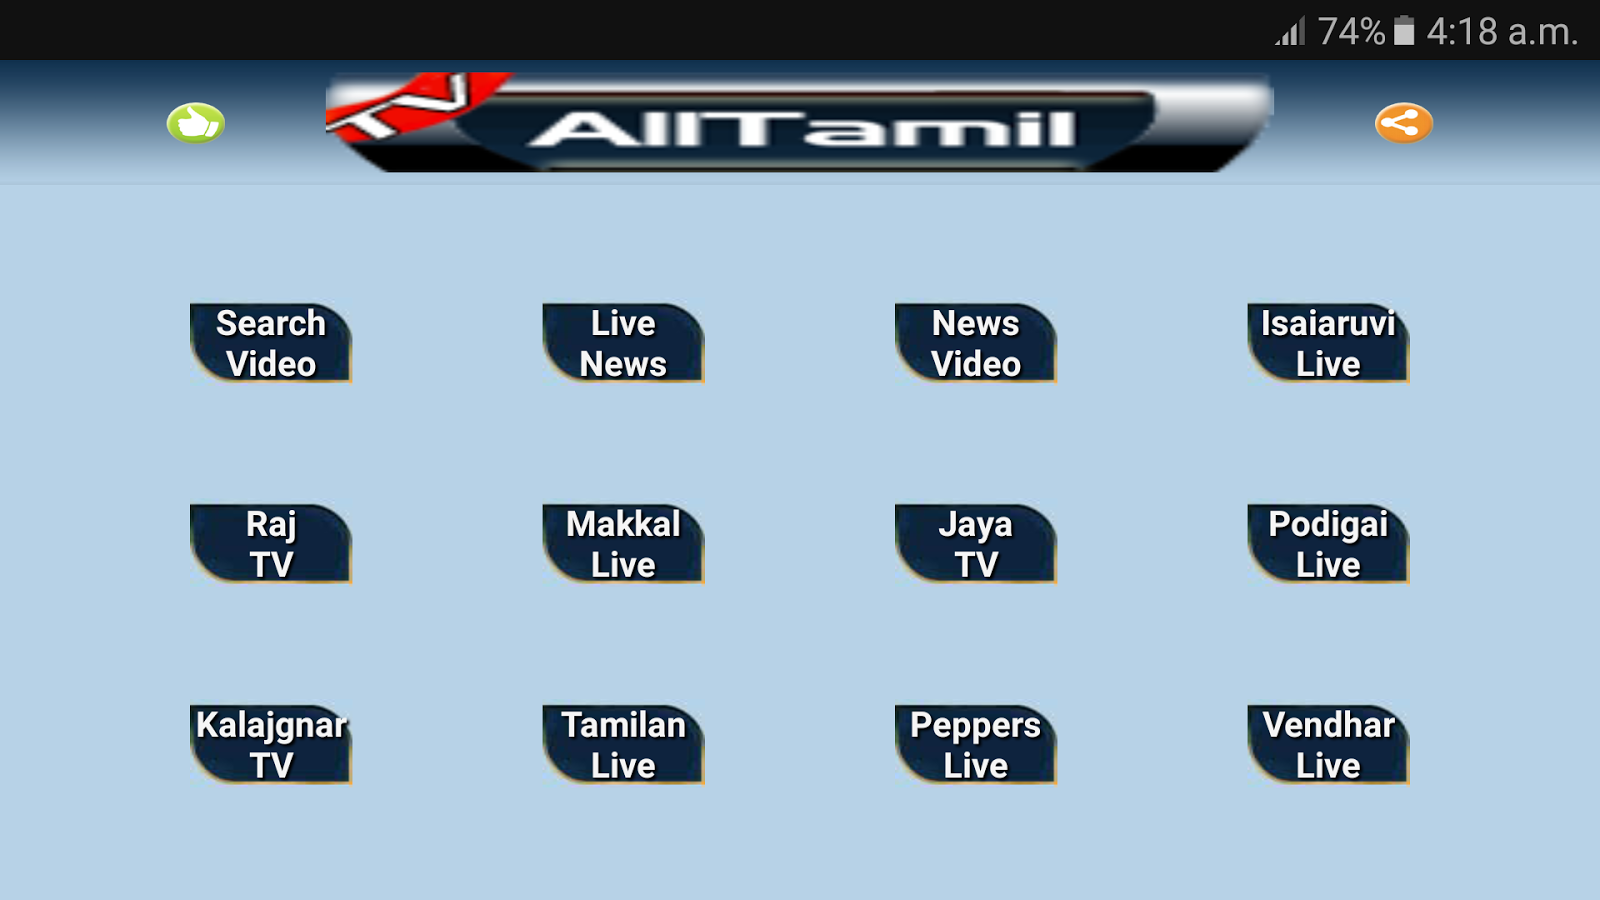 All Tamil TV 1 0 APK Download - Android Entertainment Apps